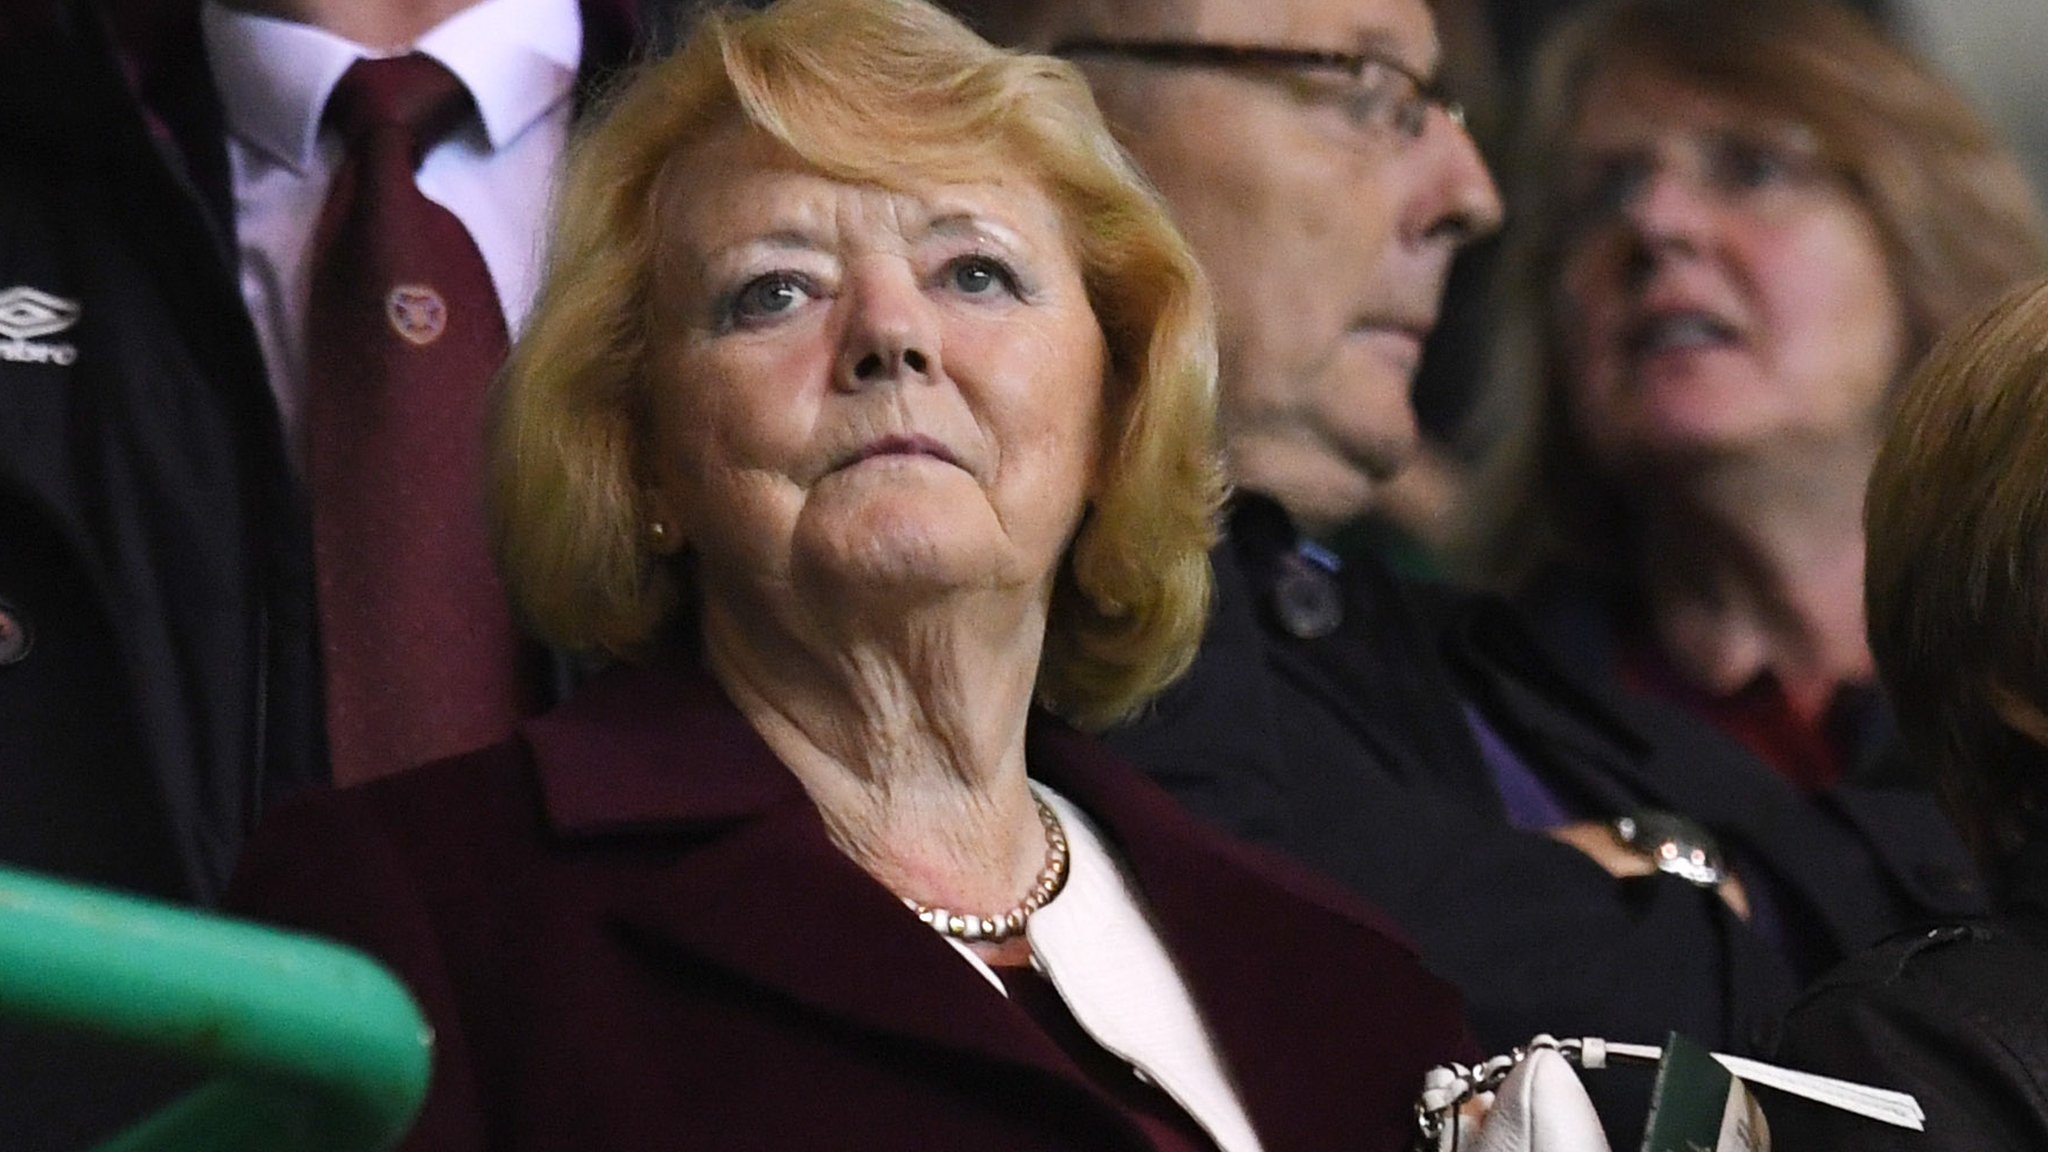 Hearts owner Budge to stay for 'at least another three years'